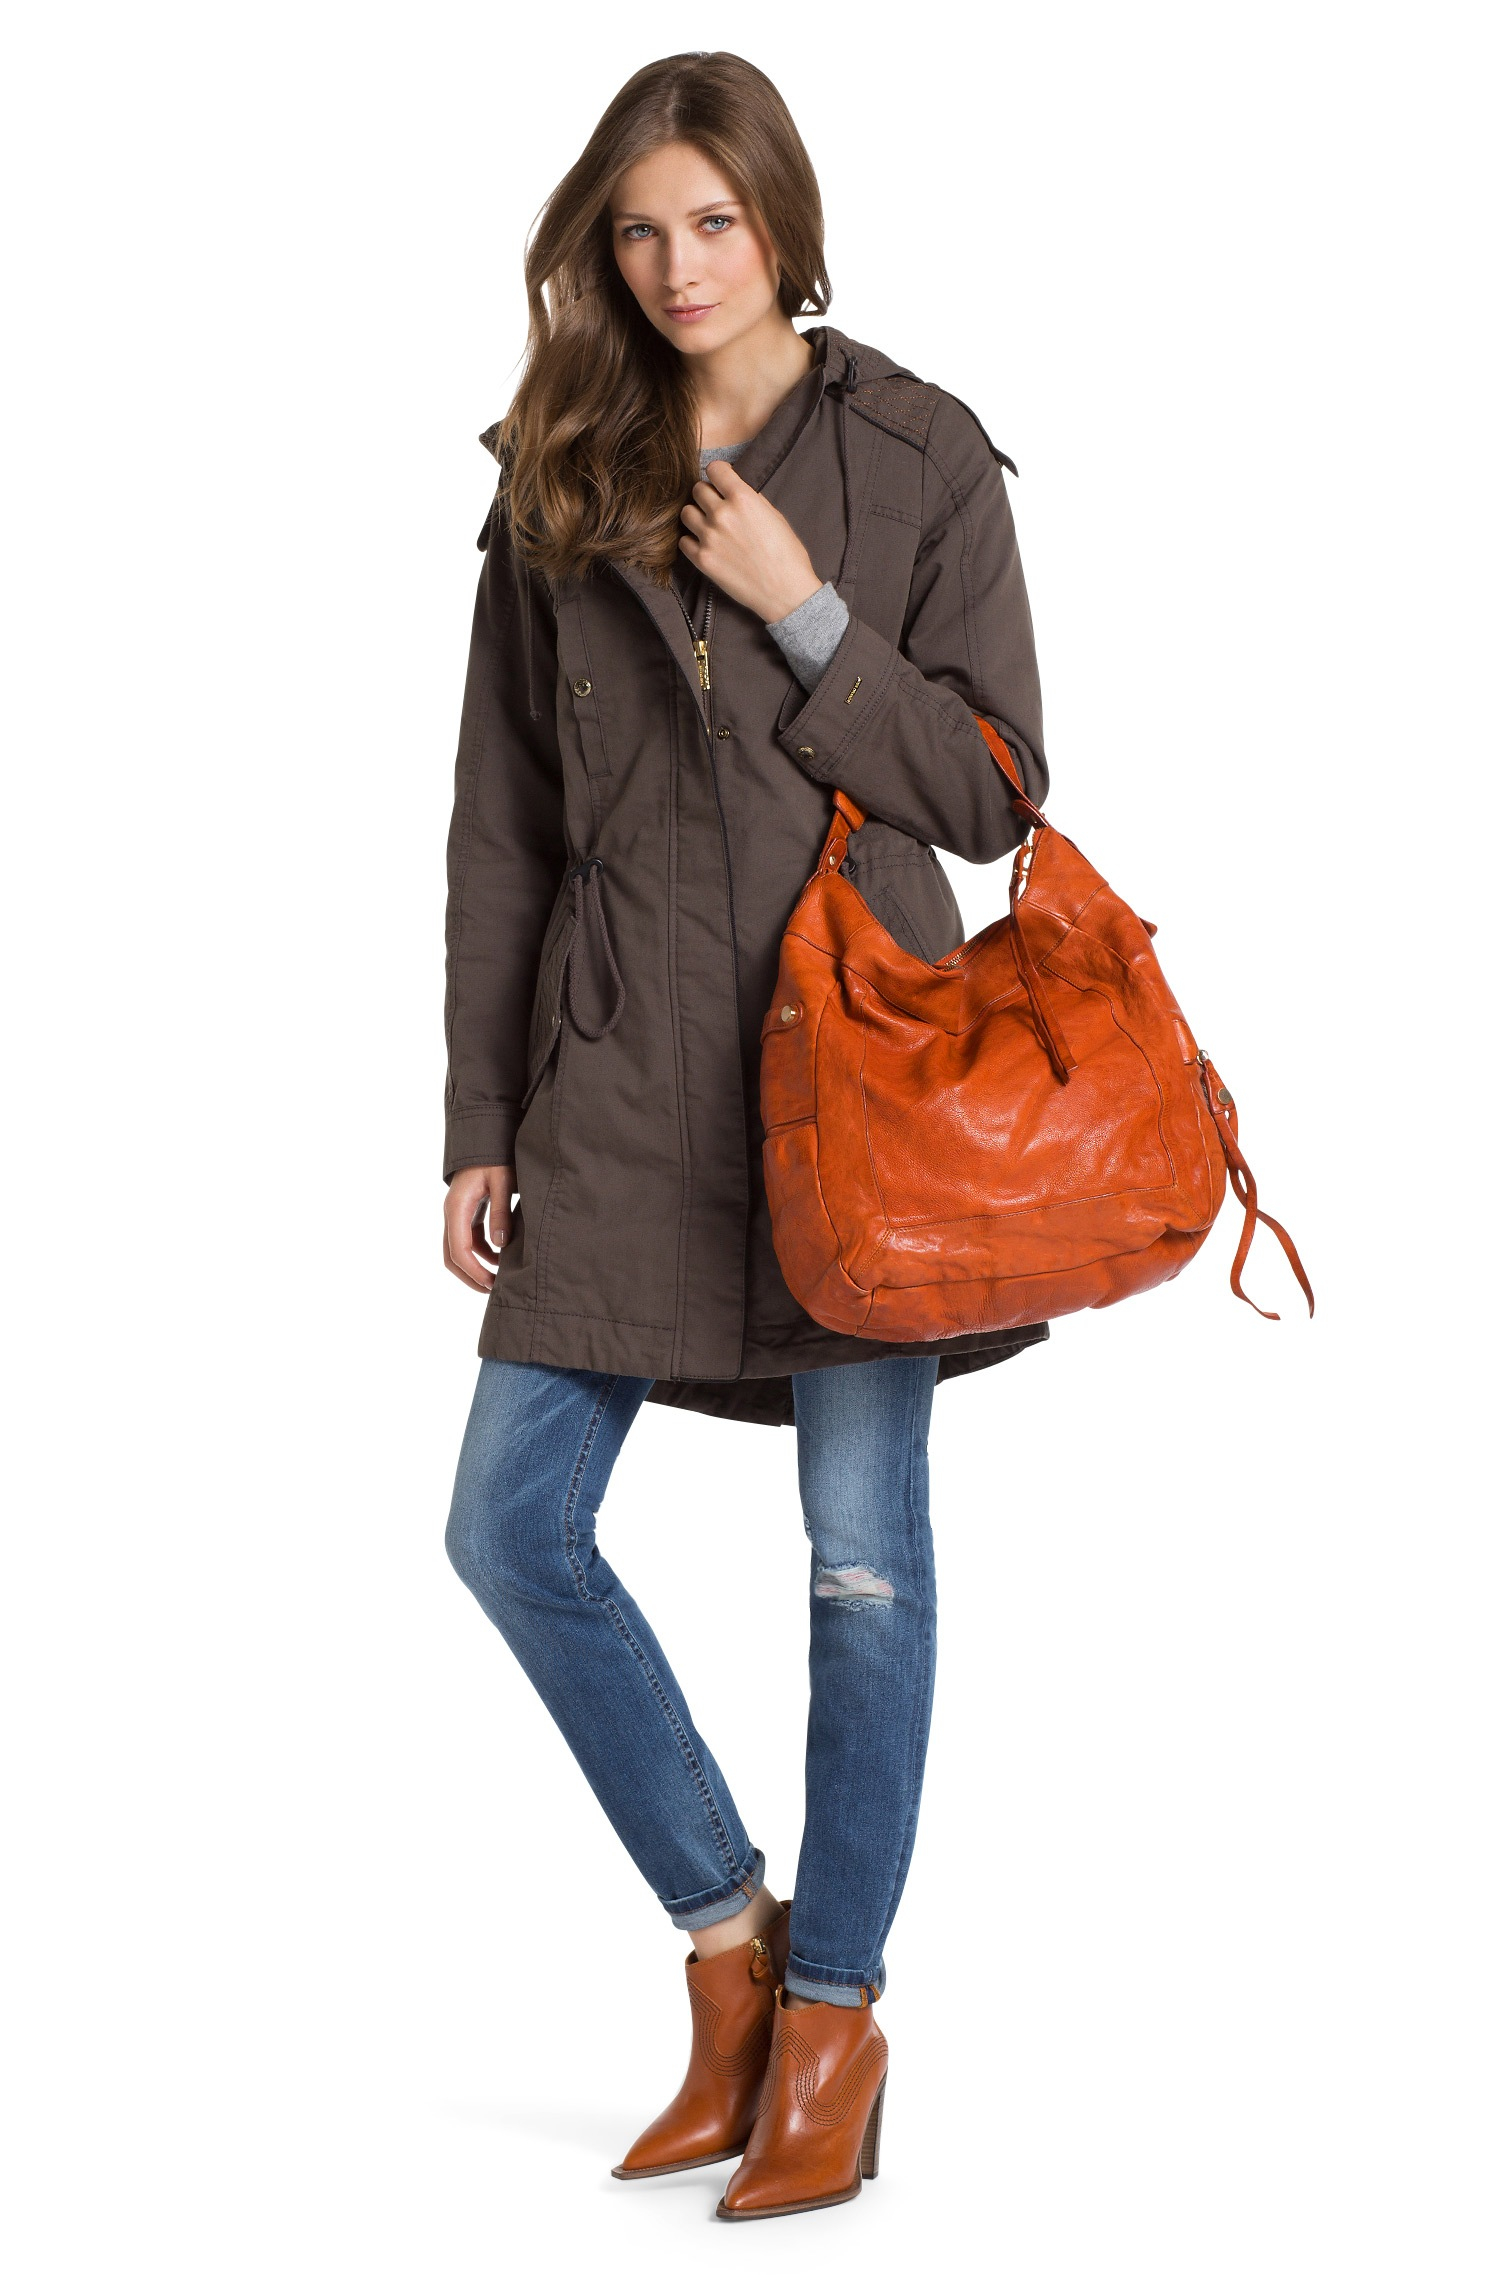 lyst boss orange hobo bag 39 raquel 39 in leather in brown. Black Bedroom Furniture Sets. Home Design Ideas